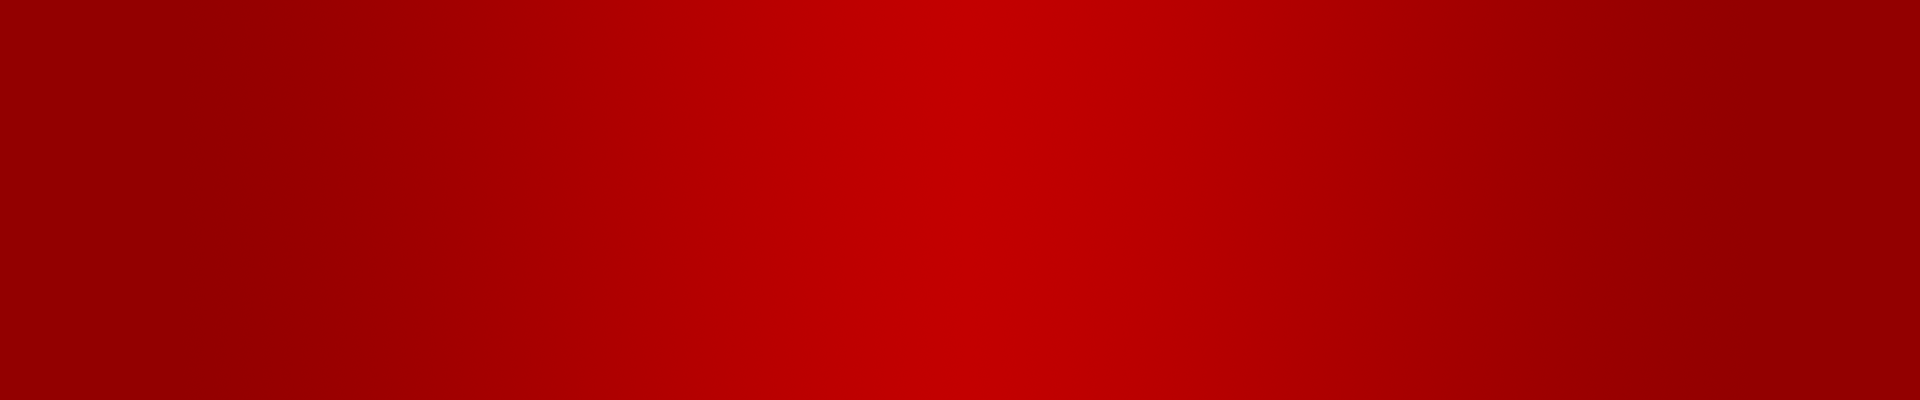 s1_red-background